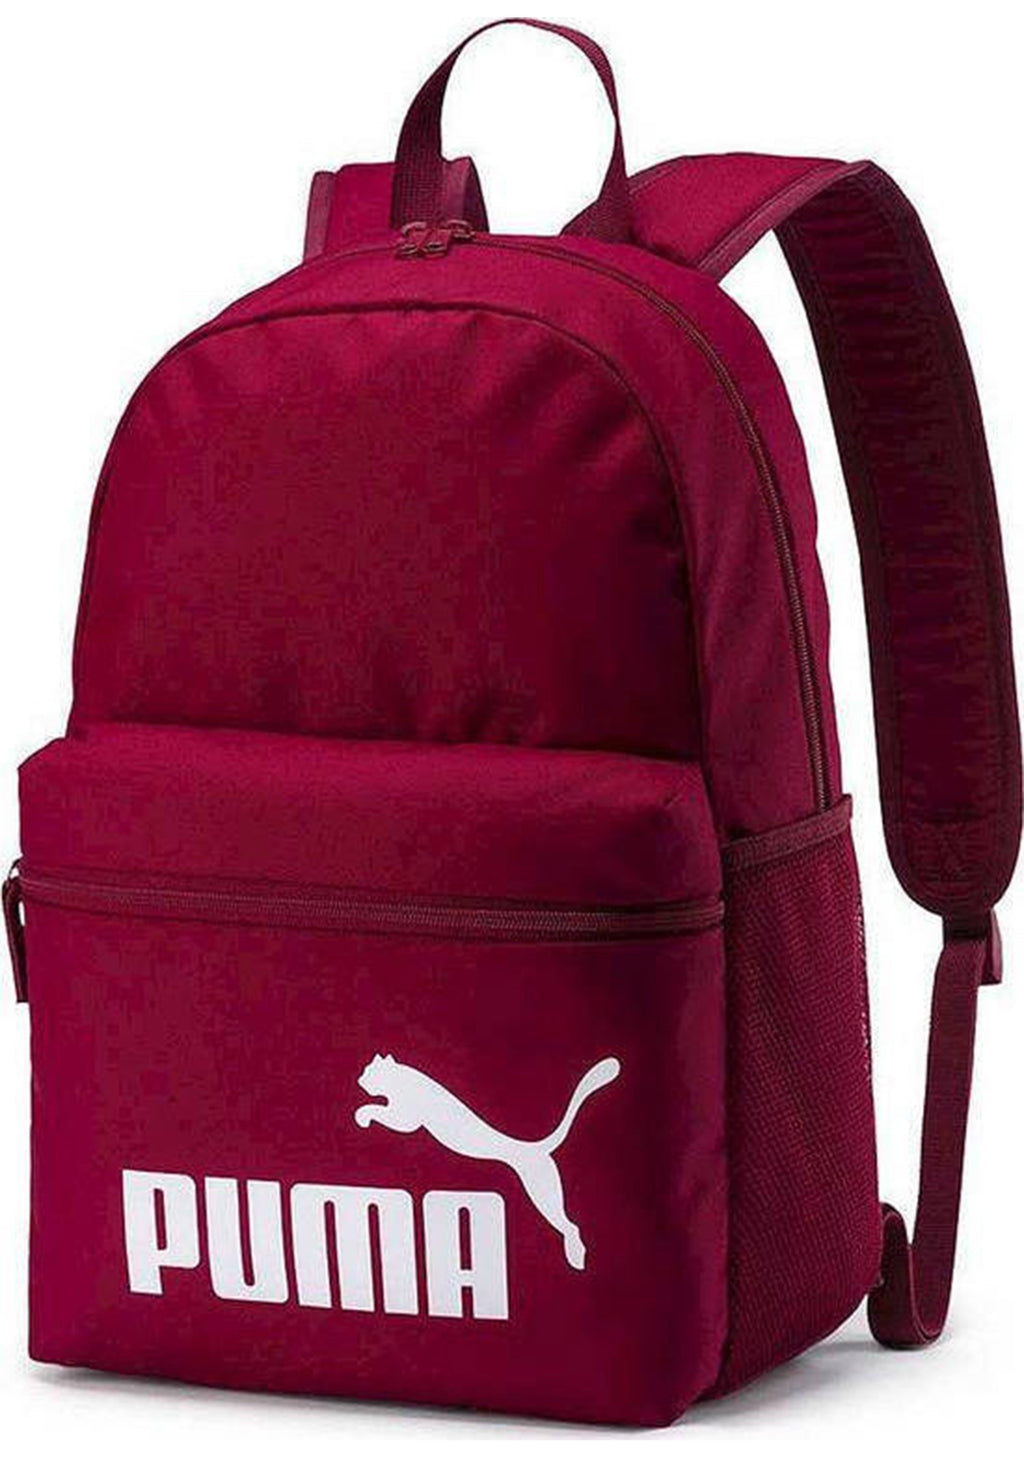 PUMA PHASE BACKPACK RHUBARB <br> 075487 35